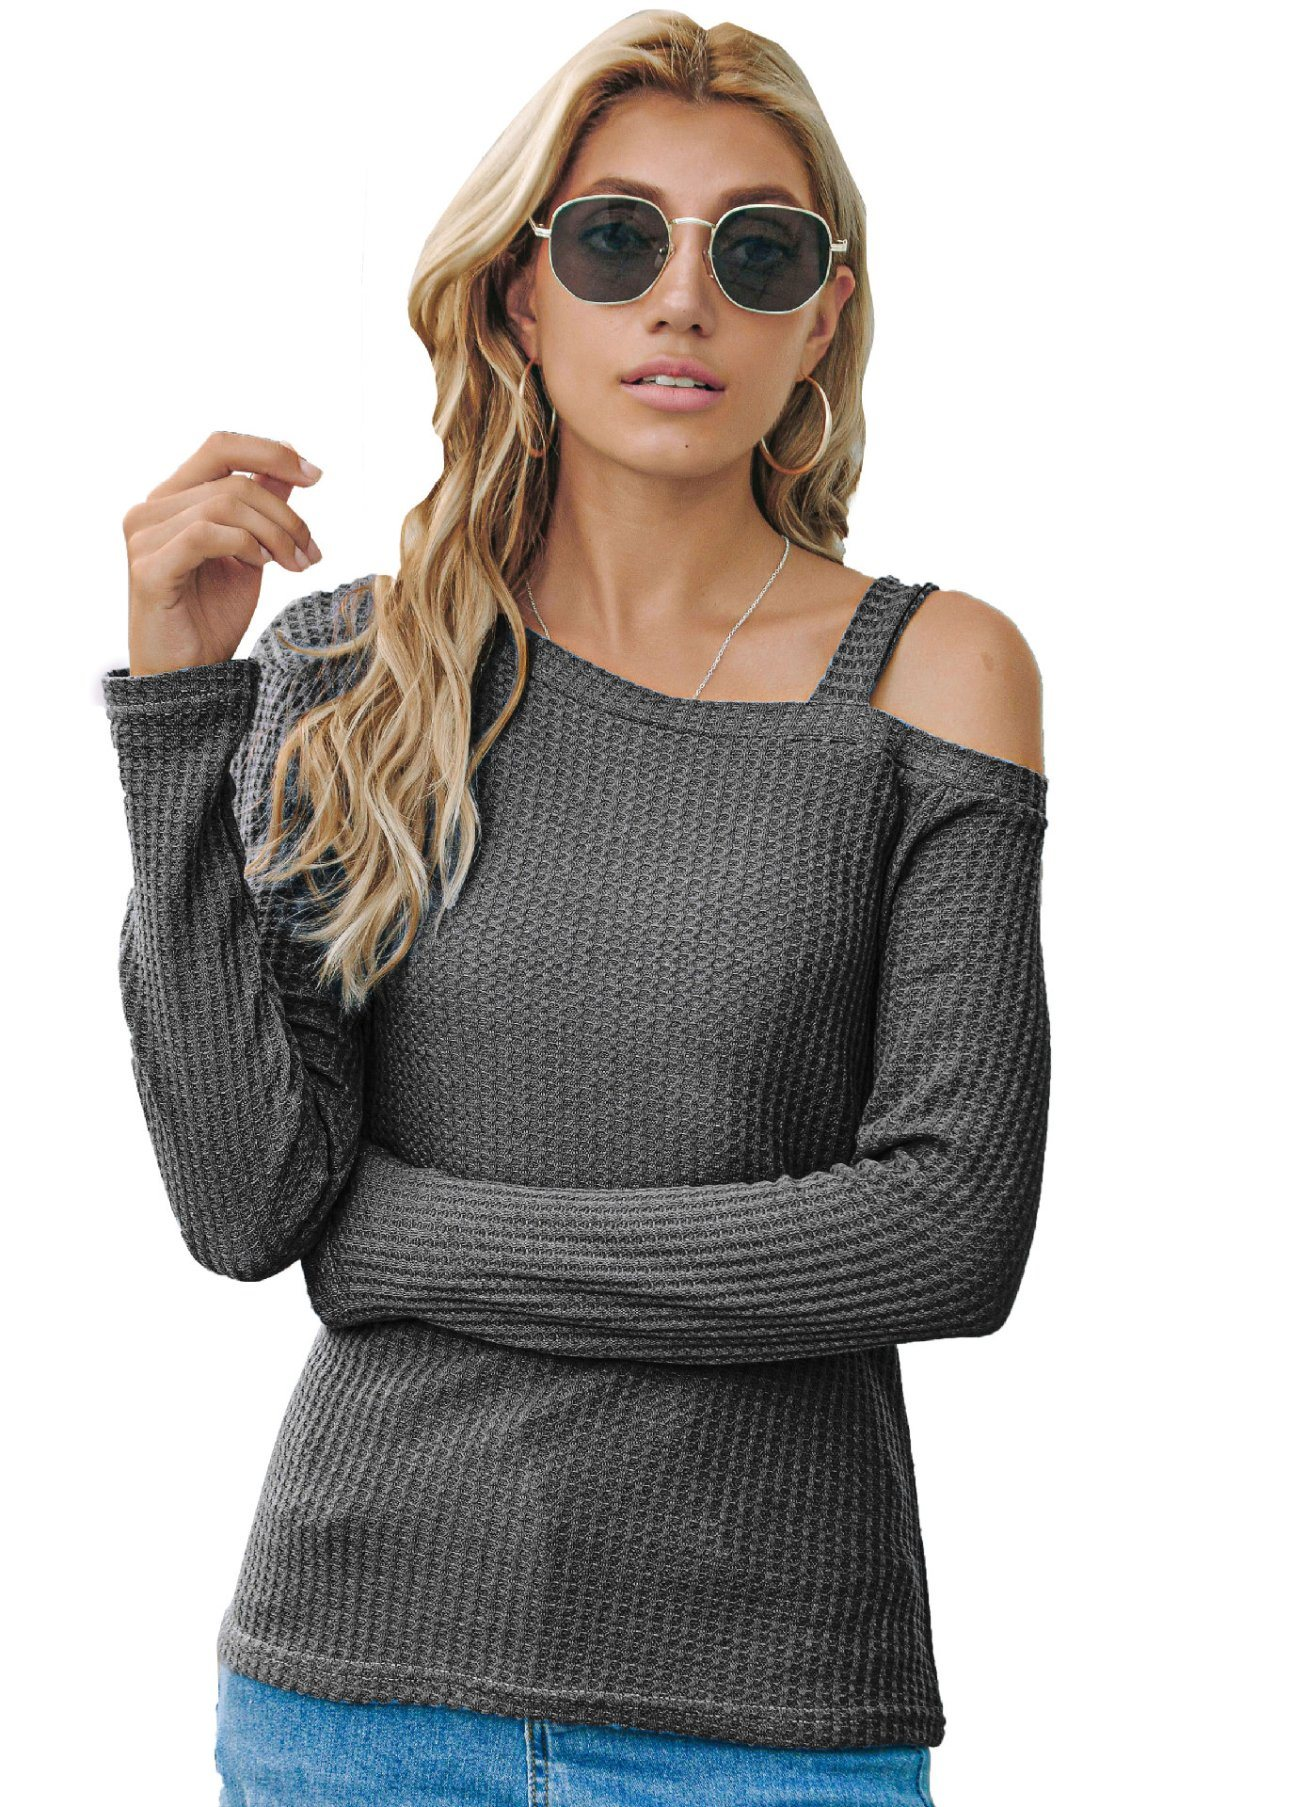 WomenS Off Shoulder Chunky Sweater Dress Ladies Baggy Long Sleeve Jumper Tops